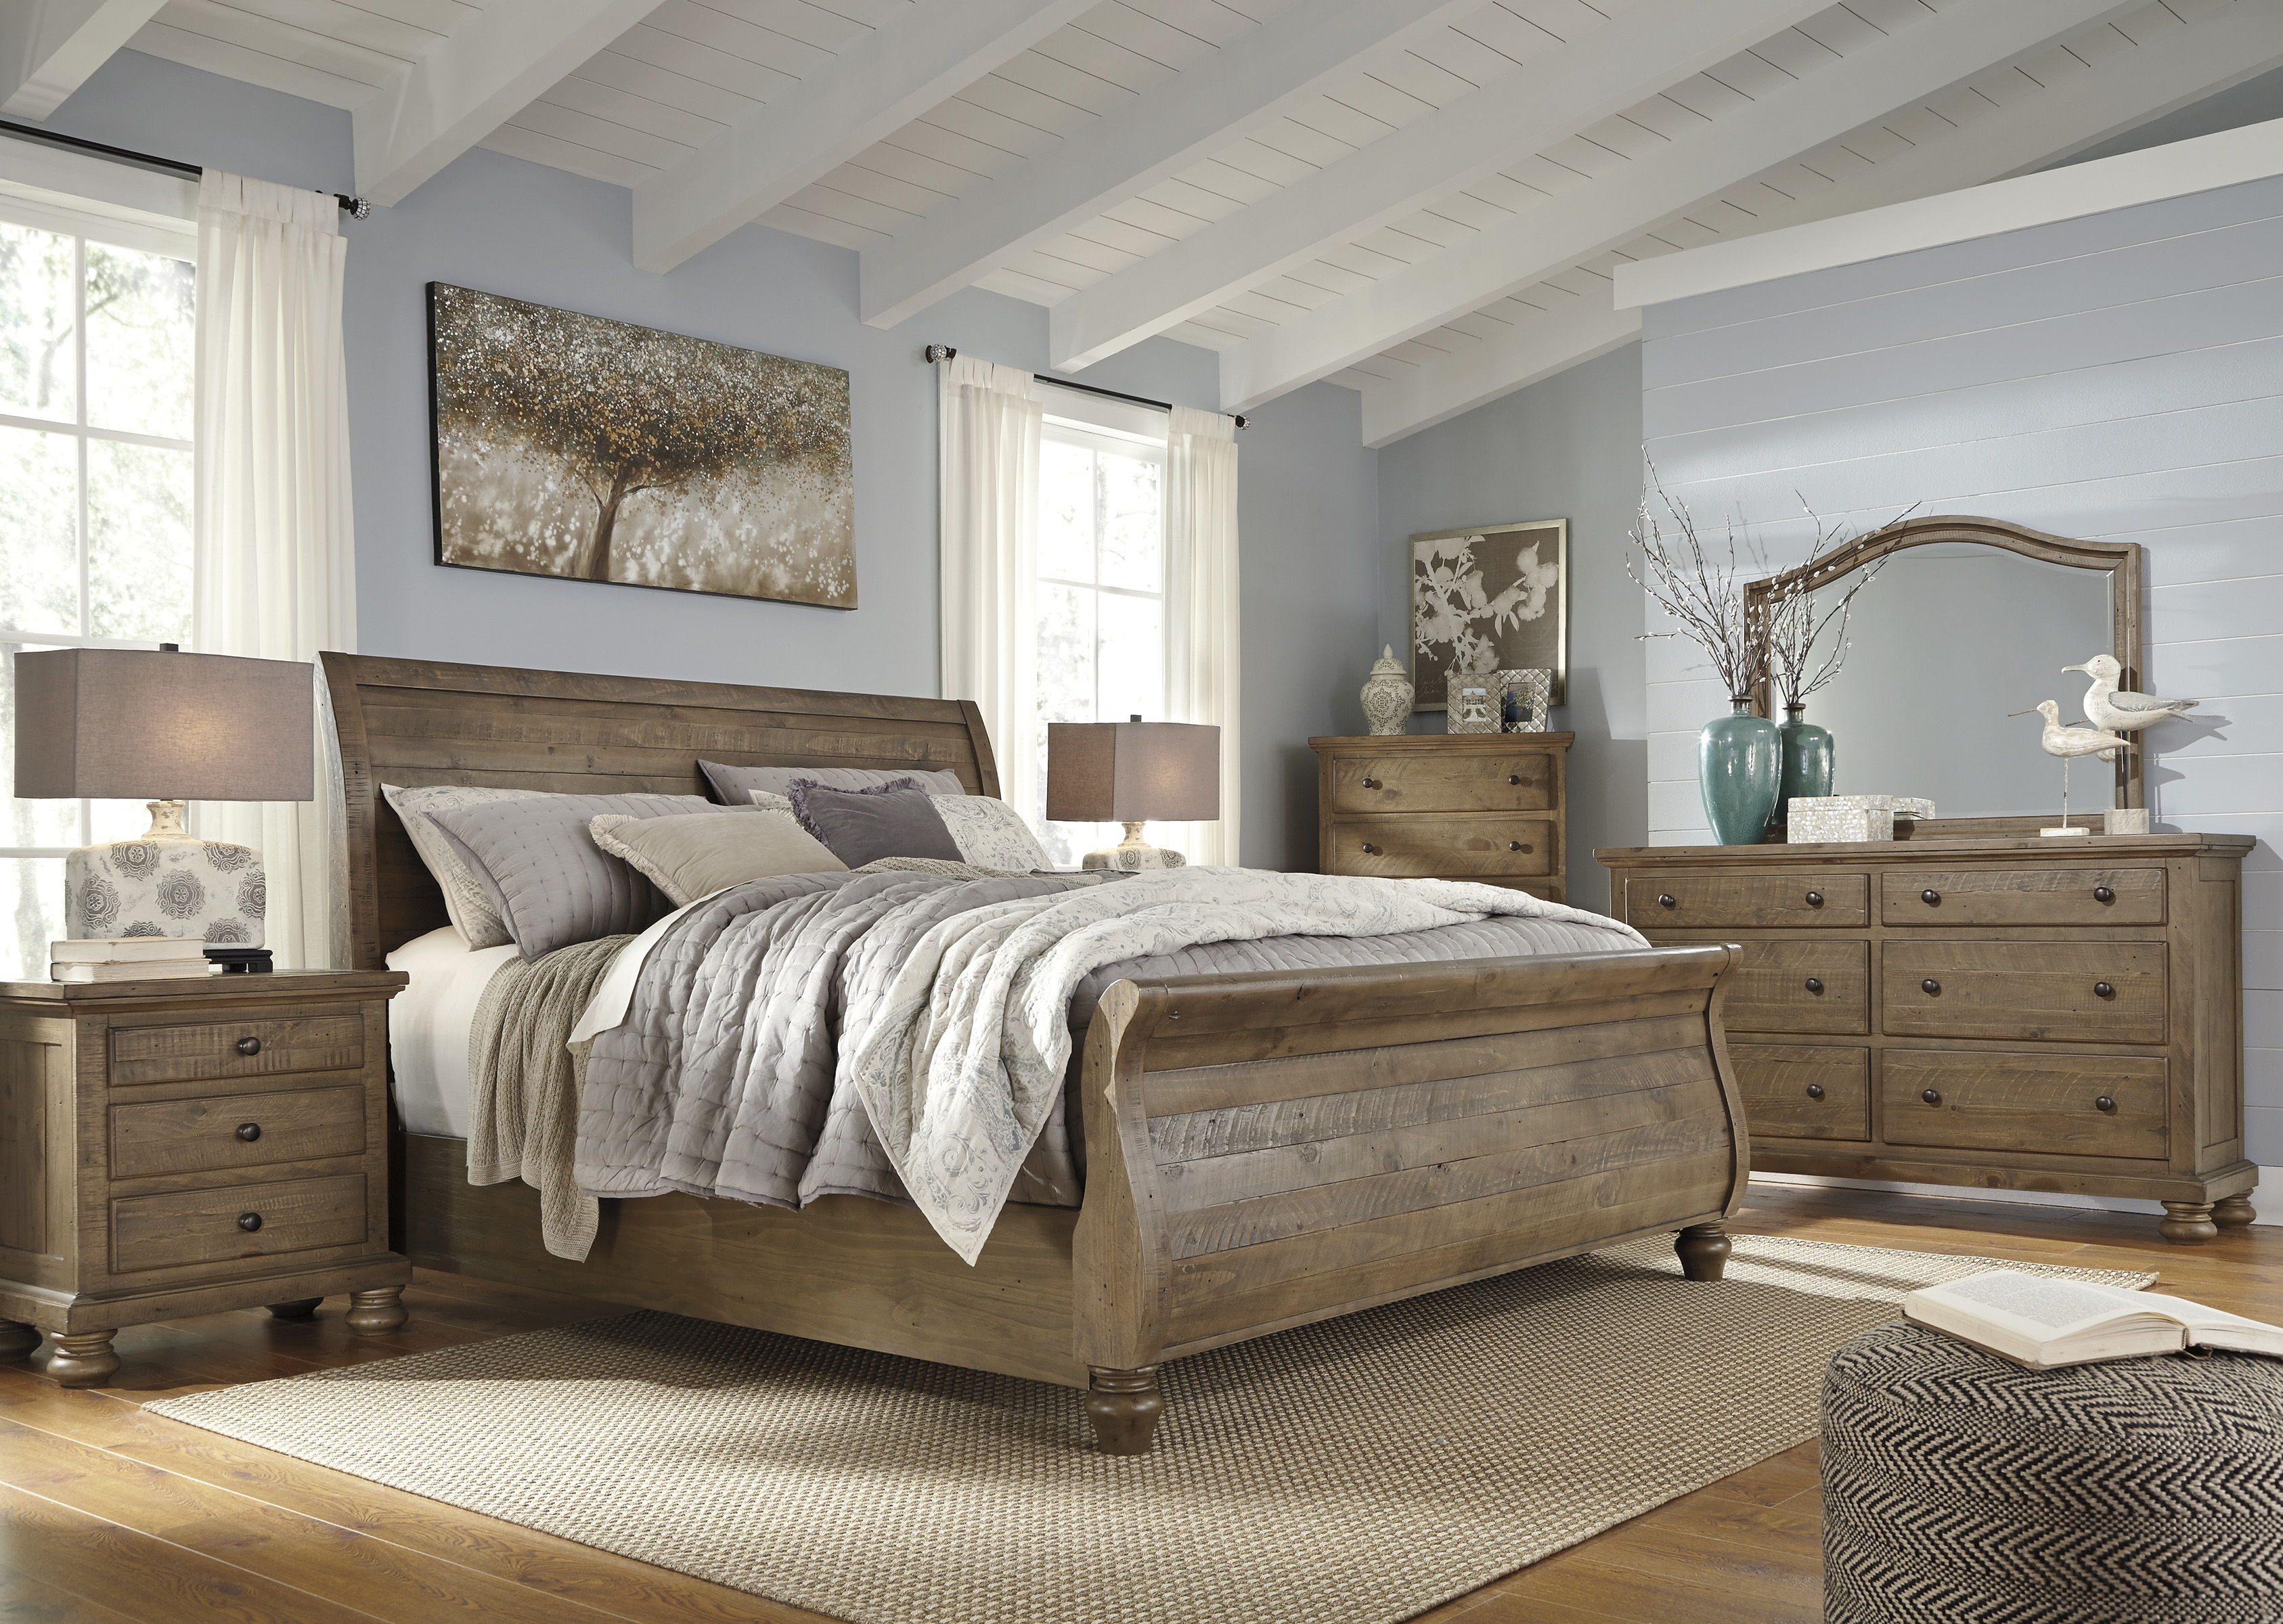 Ashley Furniture Trishley Light Brown Master Bedroom Set The Classy Home